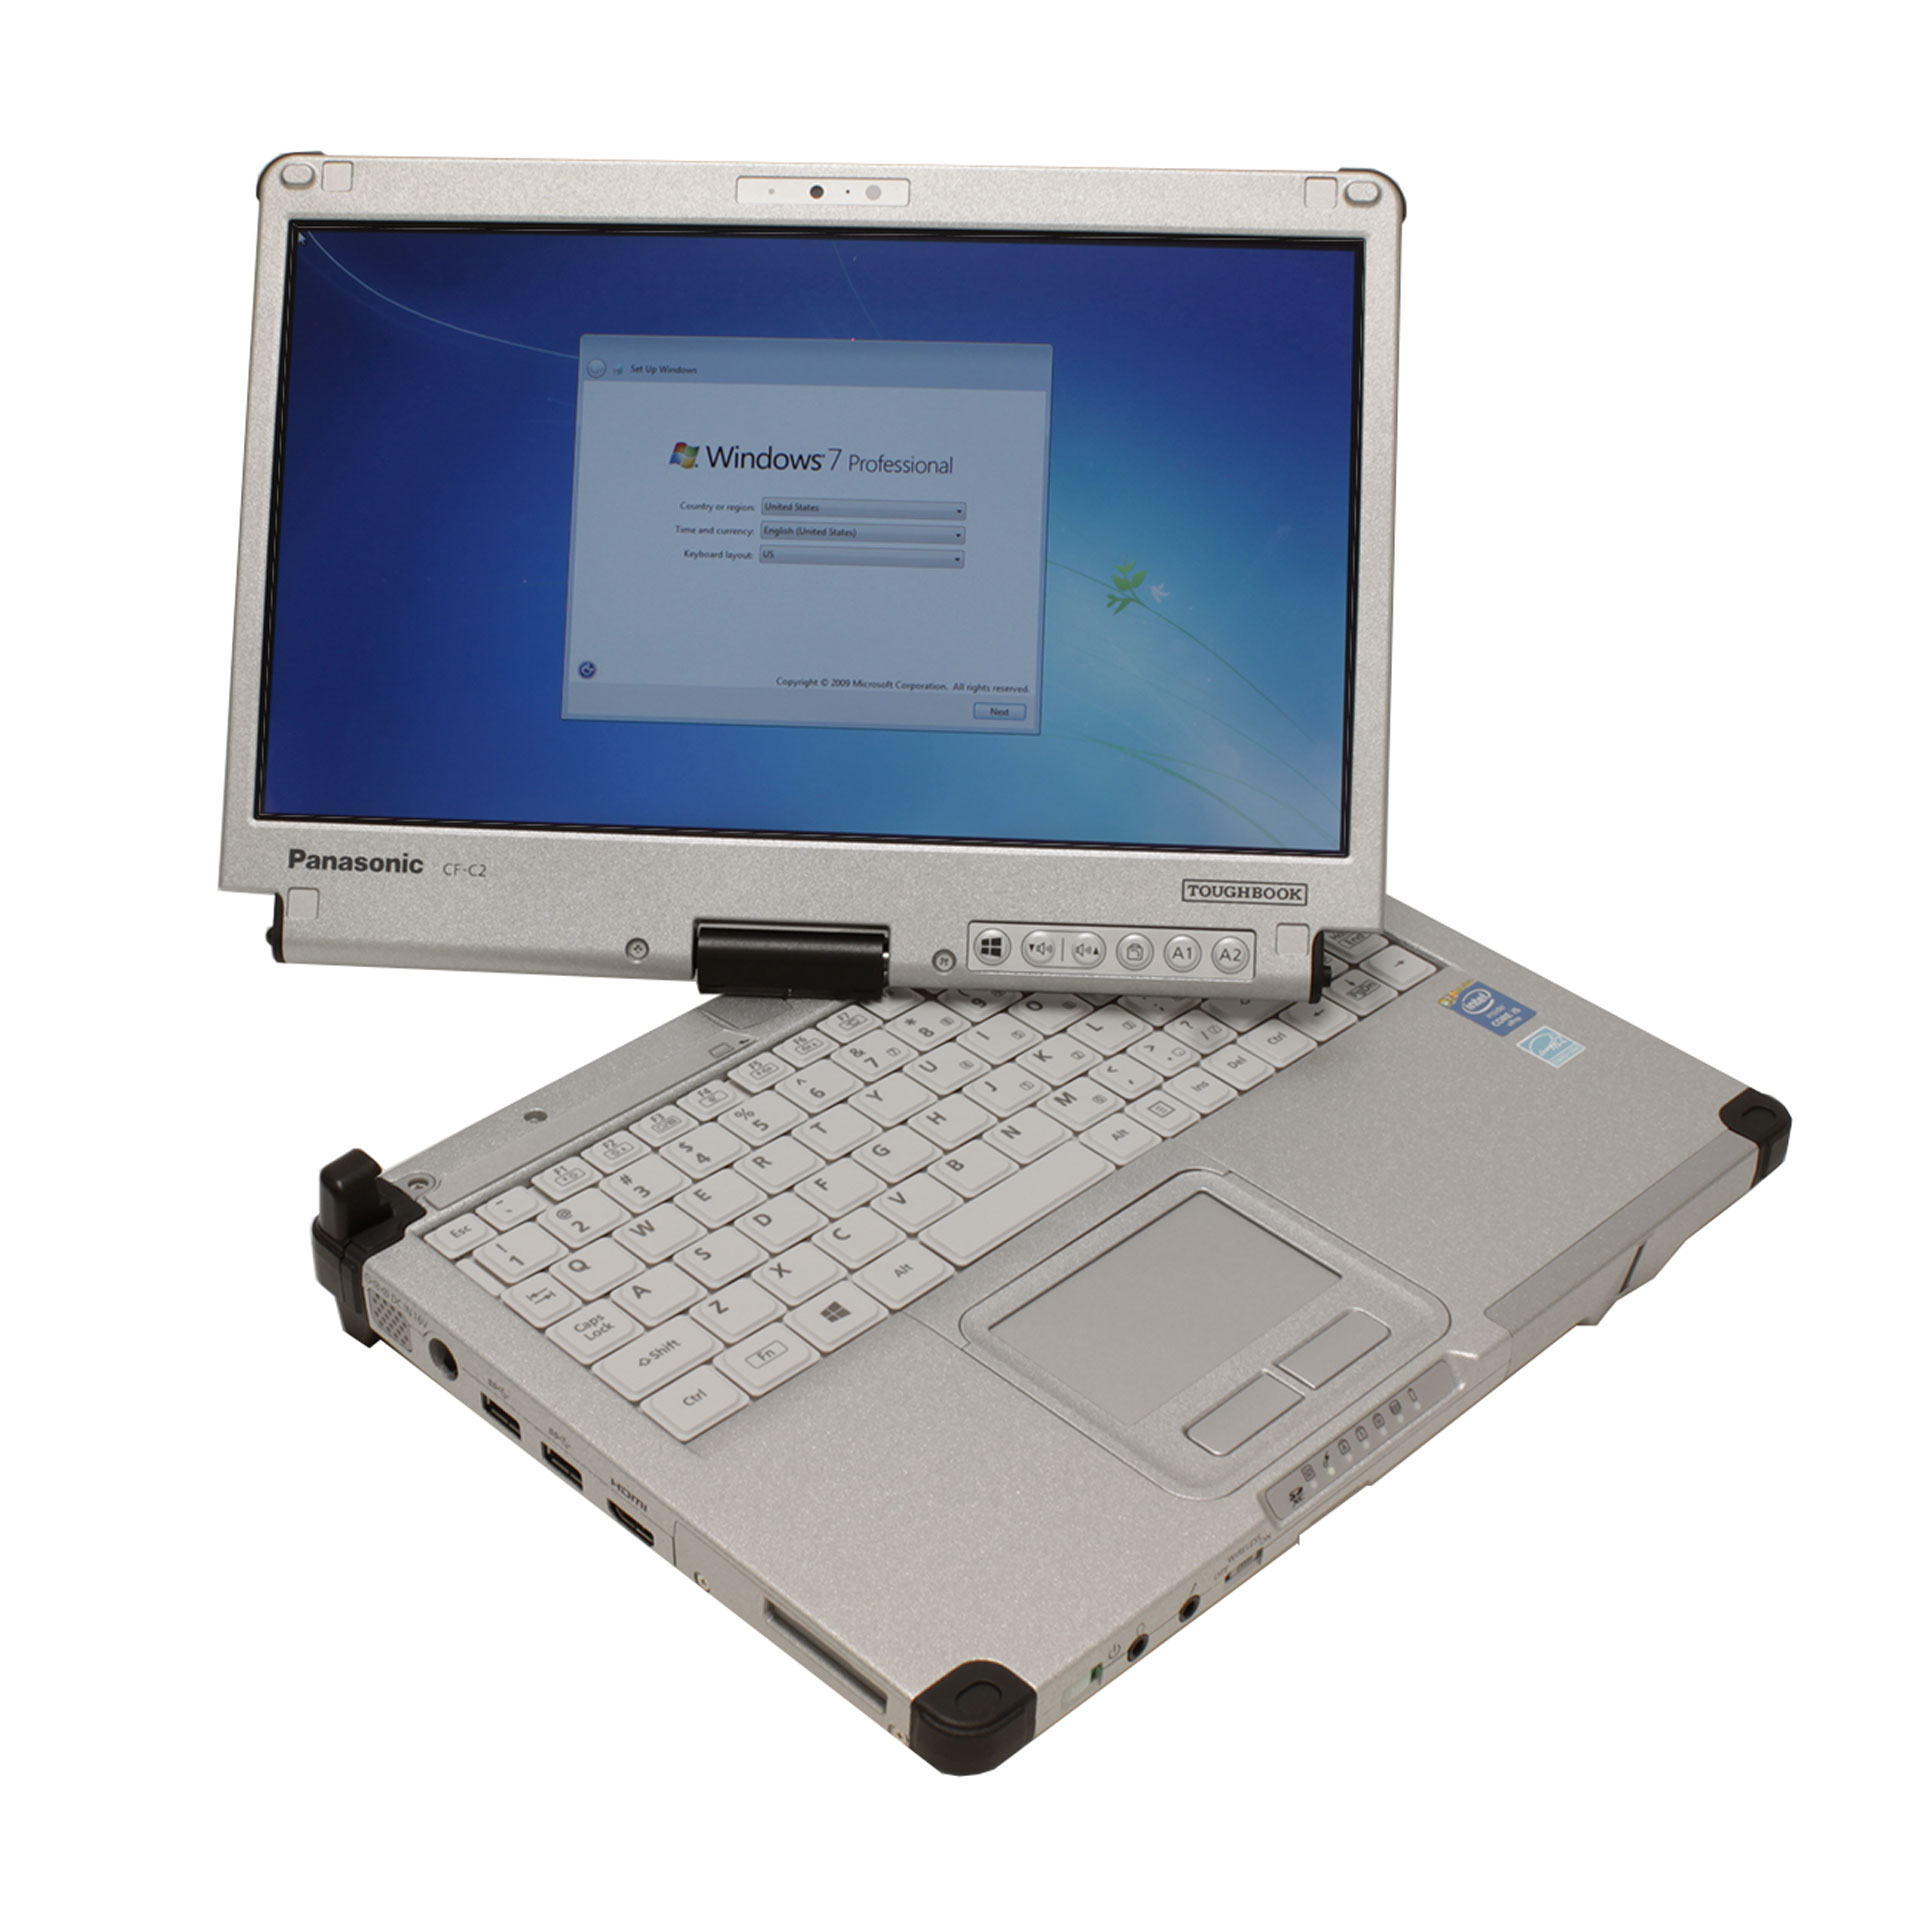 Panasonic Toughbook C2 CF-C2CCAPXCM Tablet PC i5-4300U 4GB/500GB